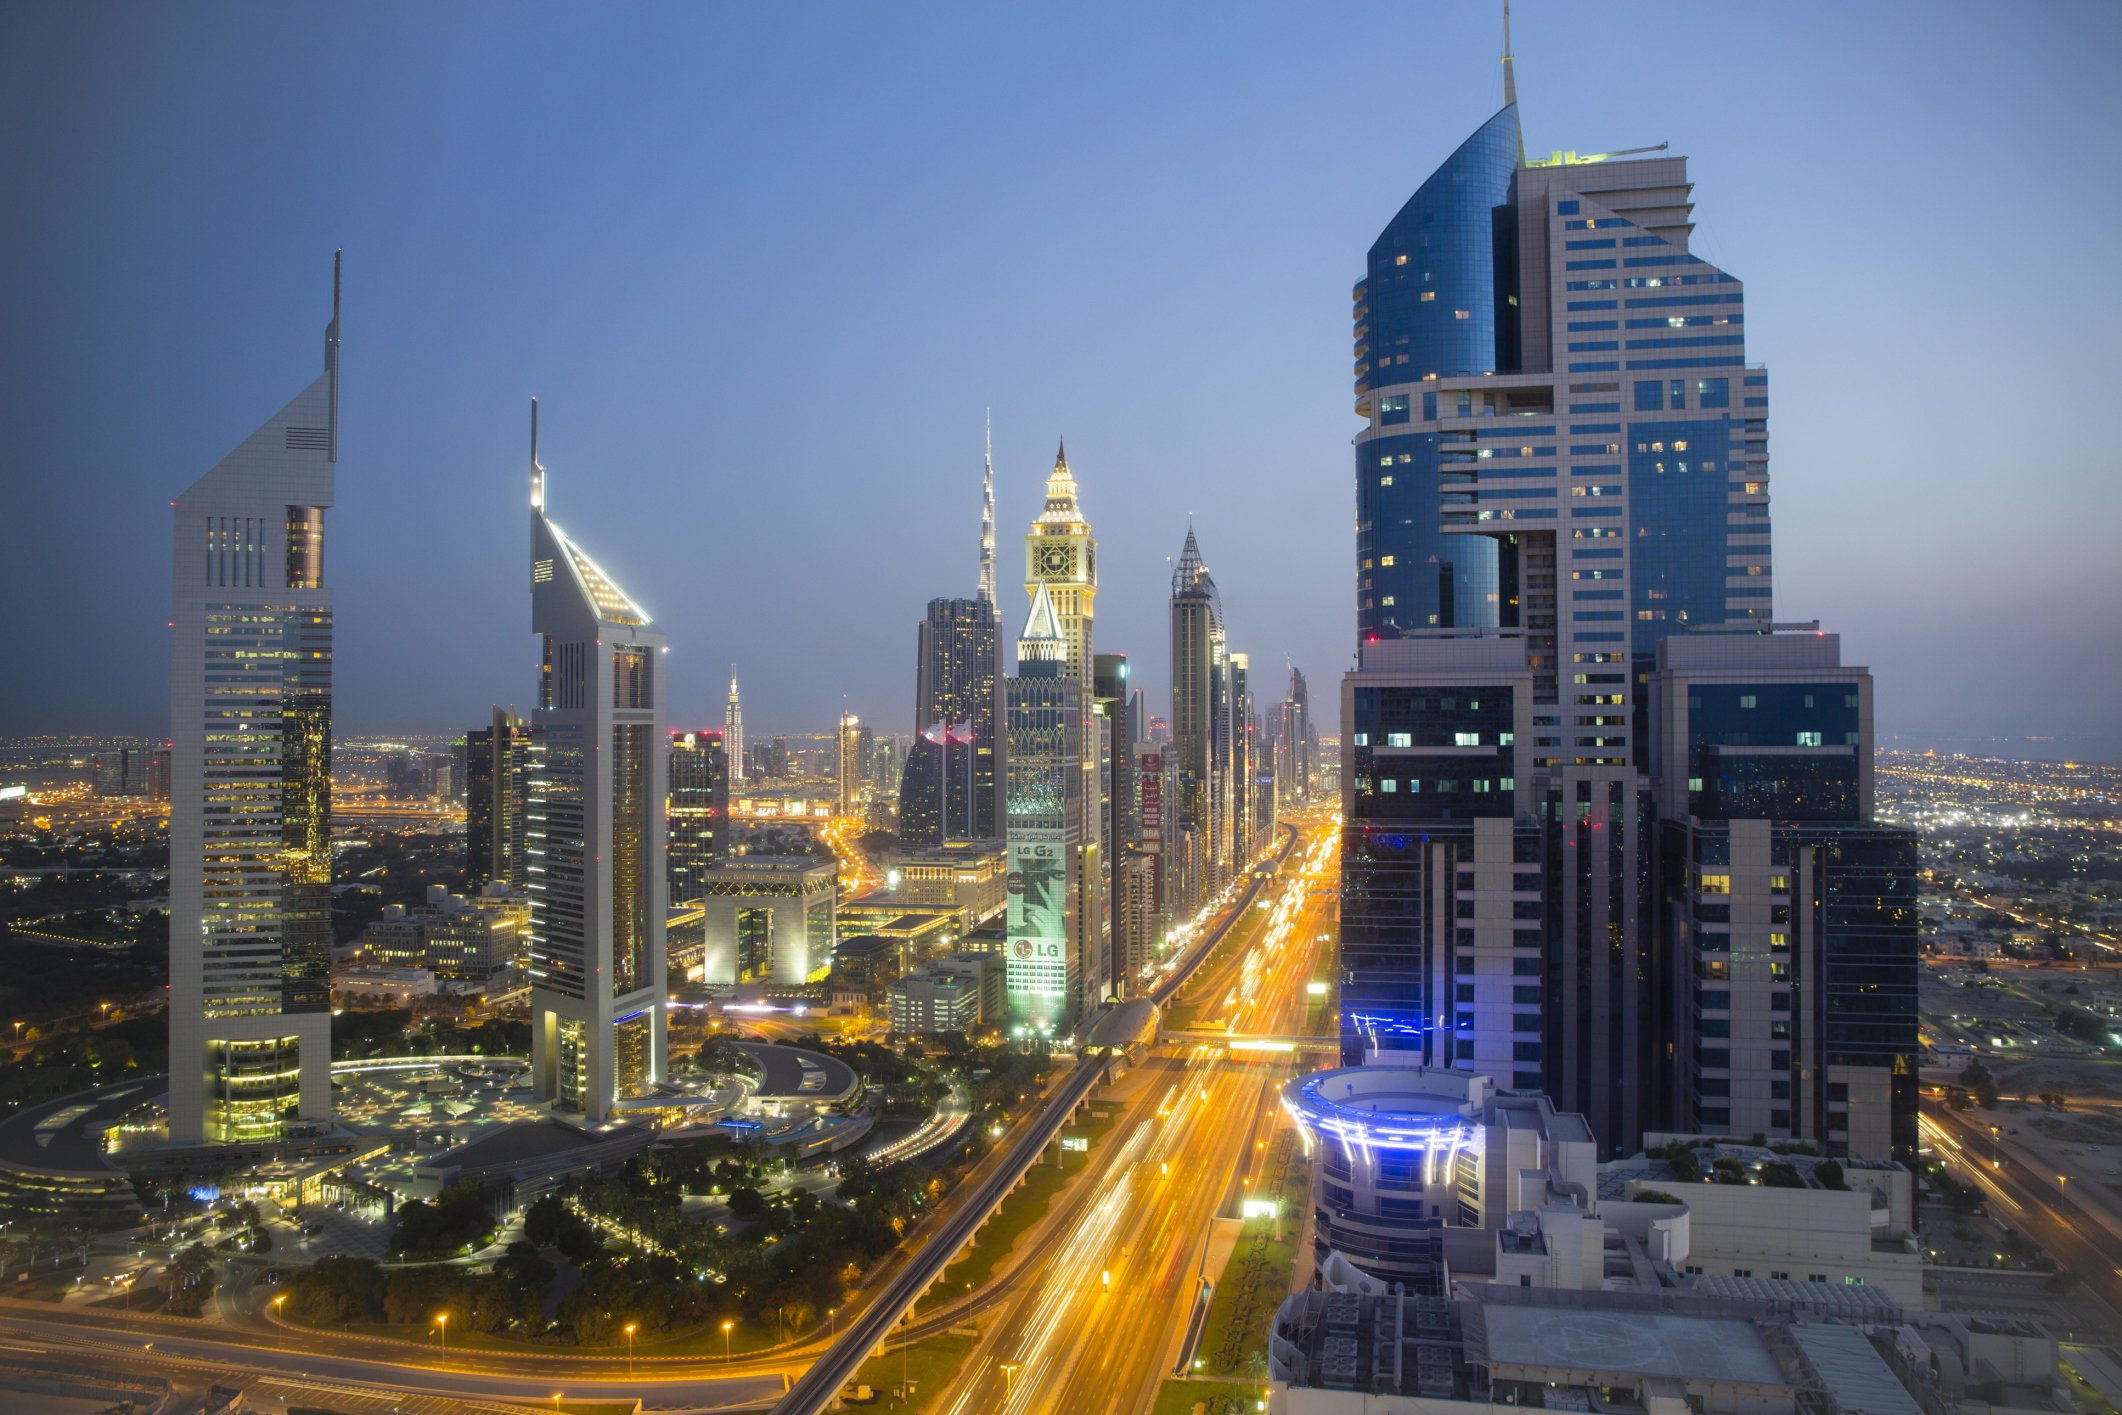 REVEALED: Top 10 Companies in UAE In 2014